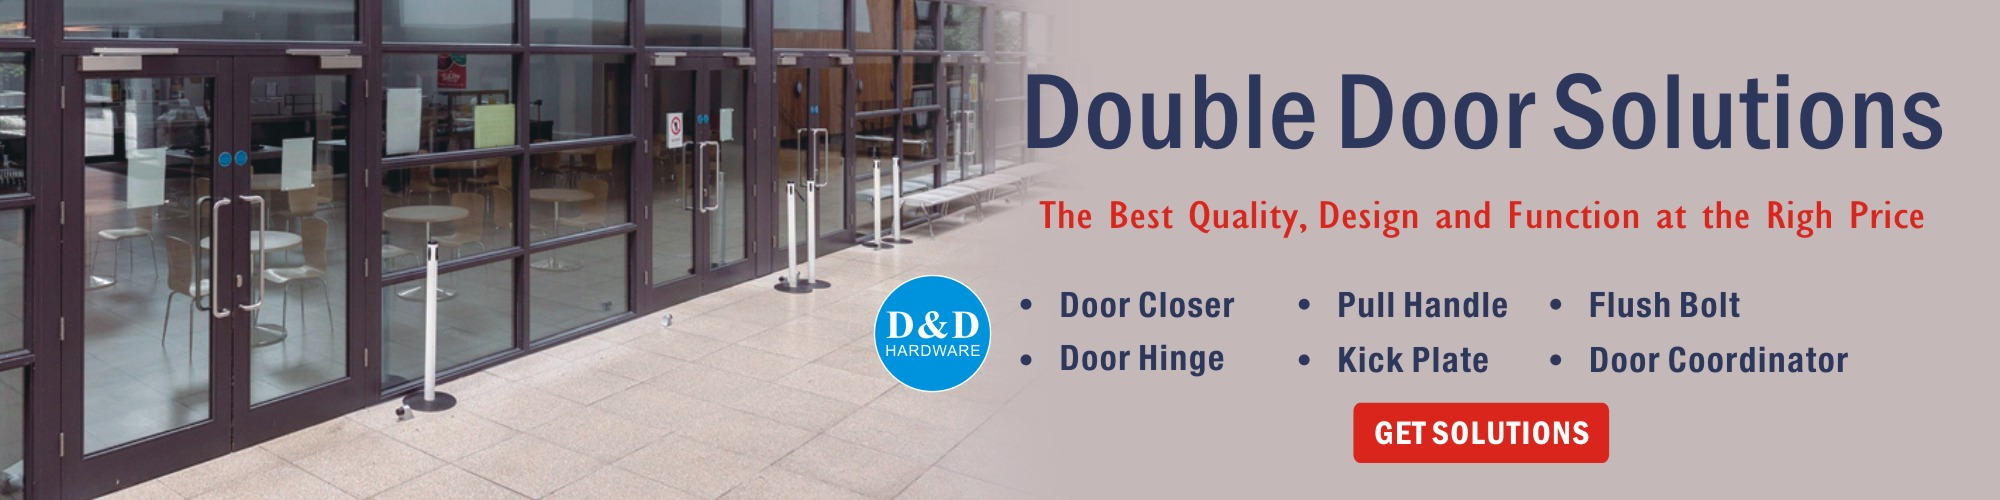 Double door solutions-D&D door Hardware supplier